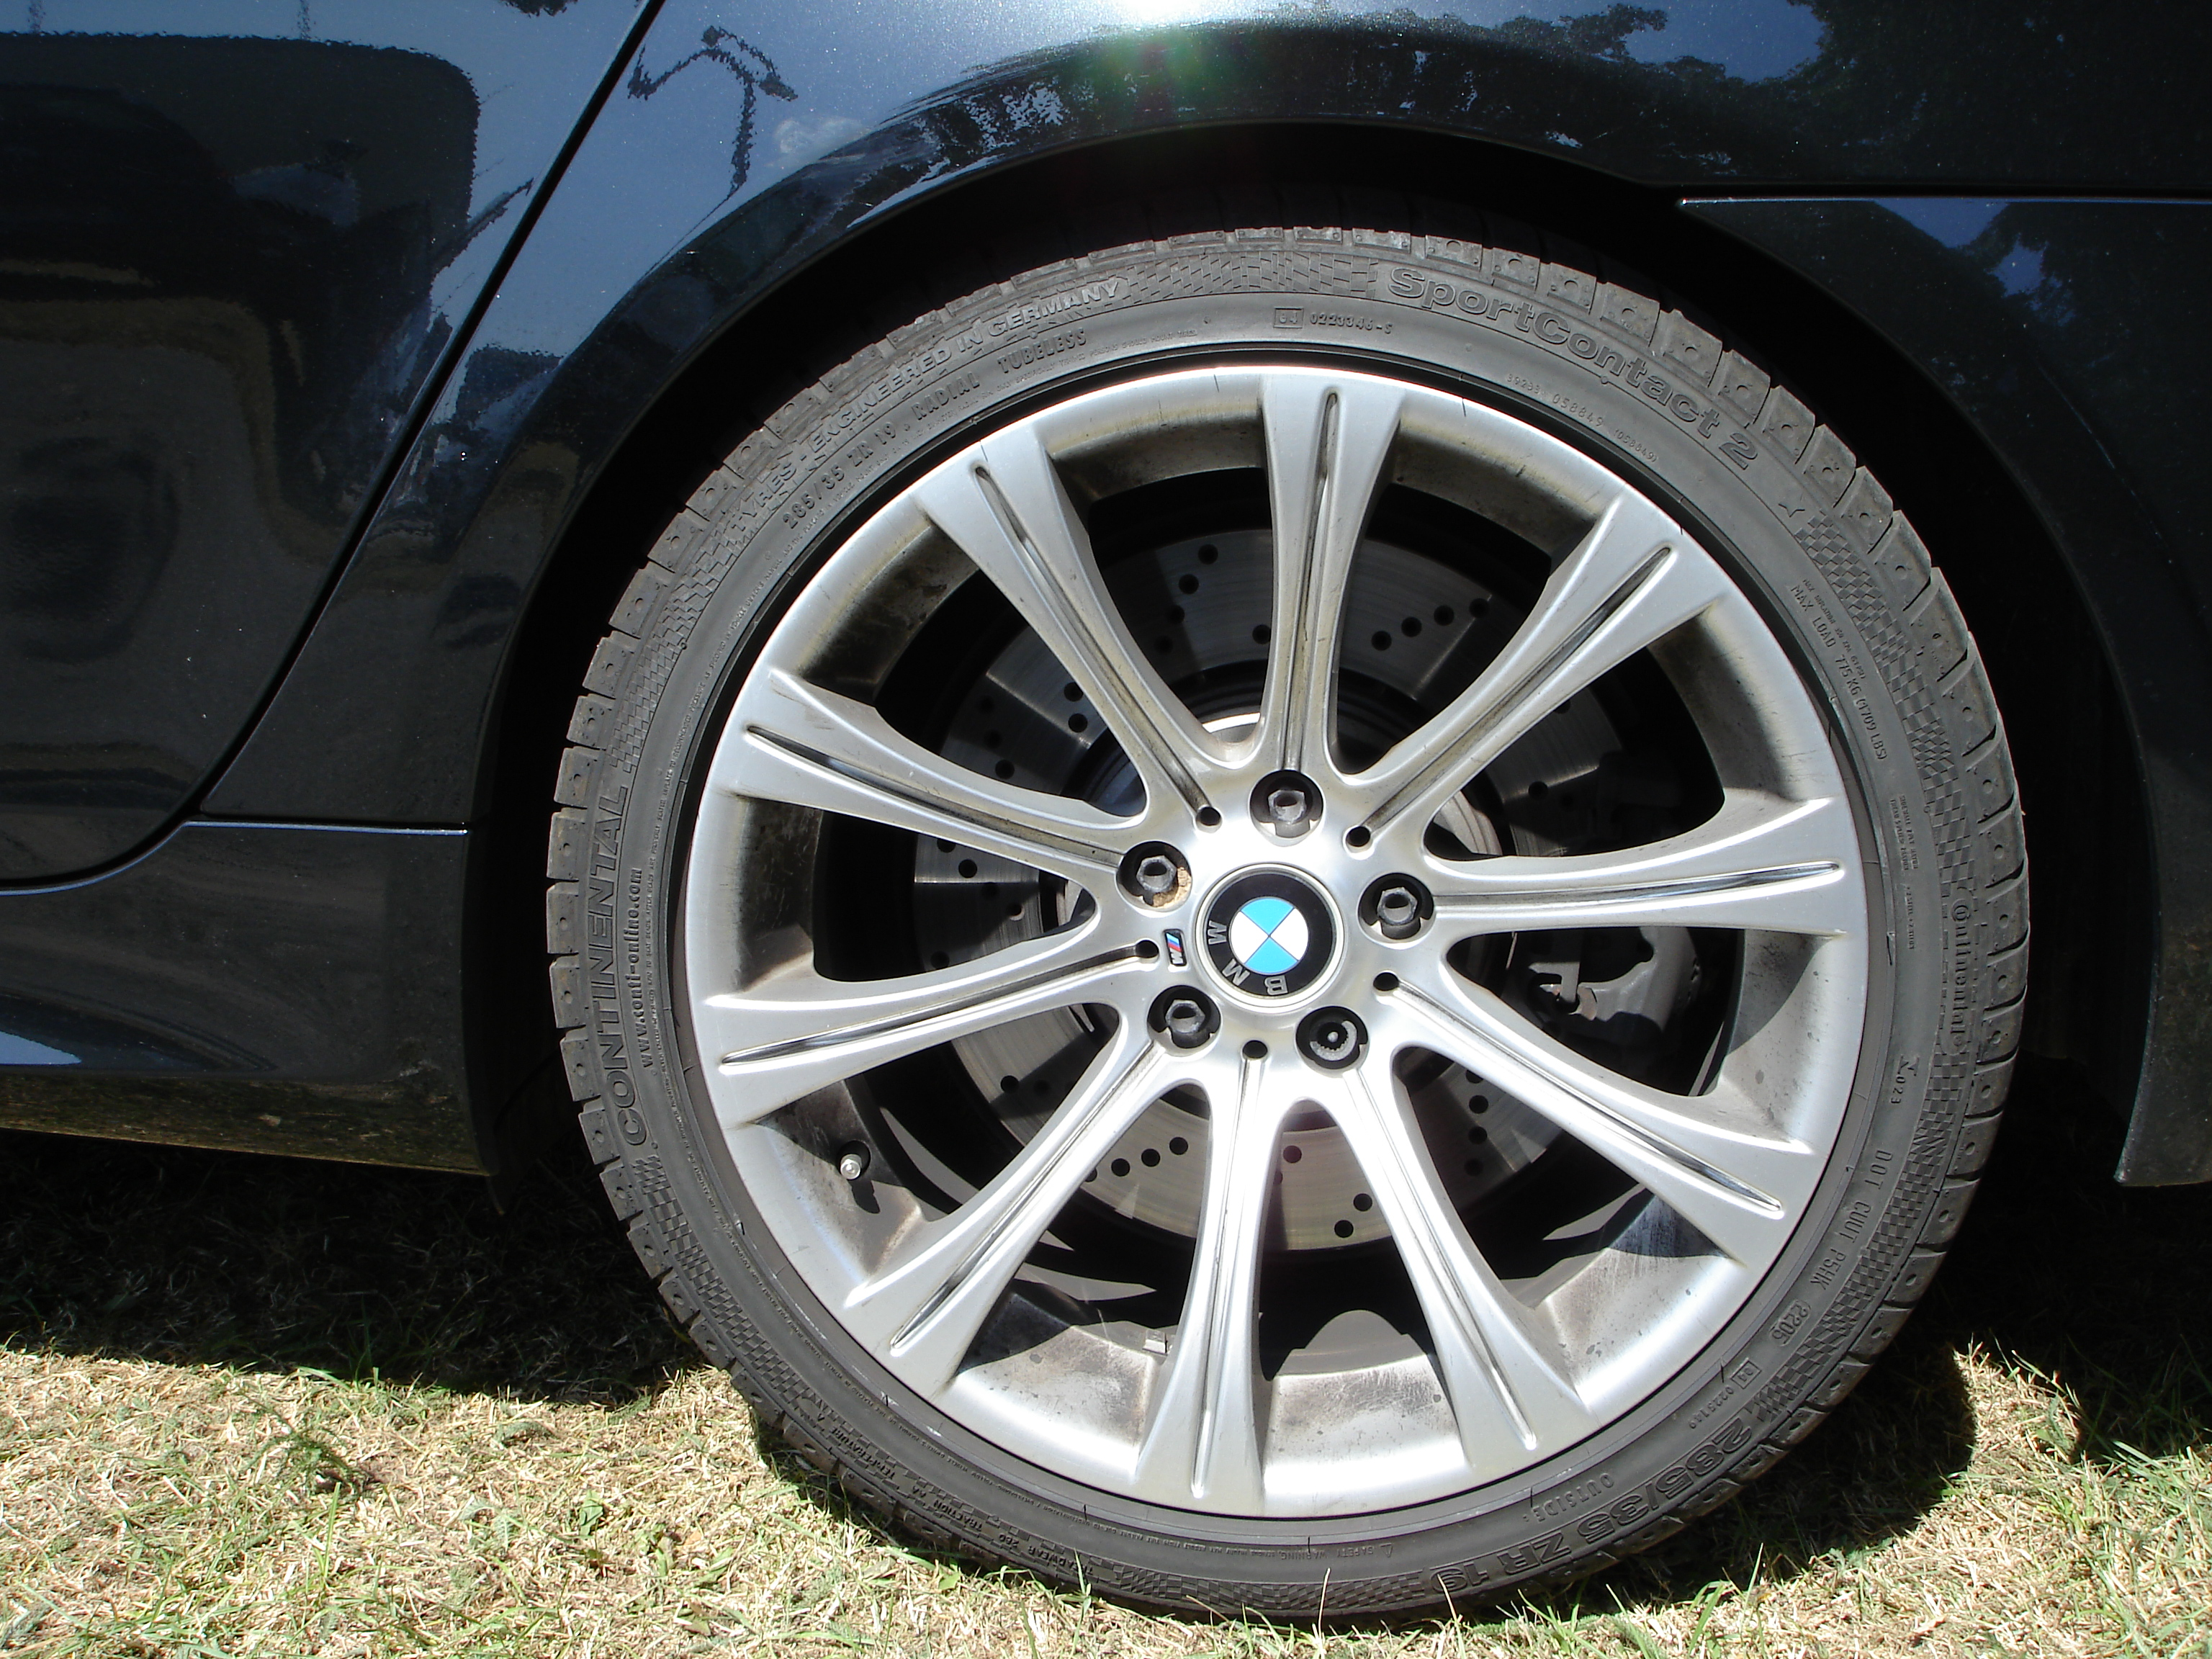 File:BMW M5 E60 rim.JPG - Wikimedia Commons